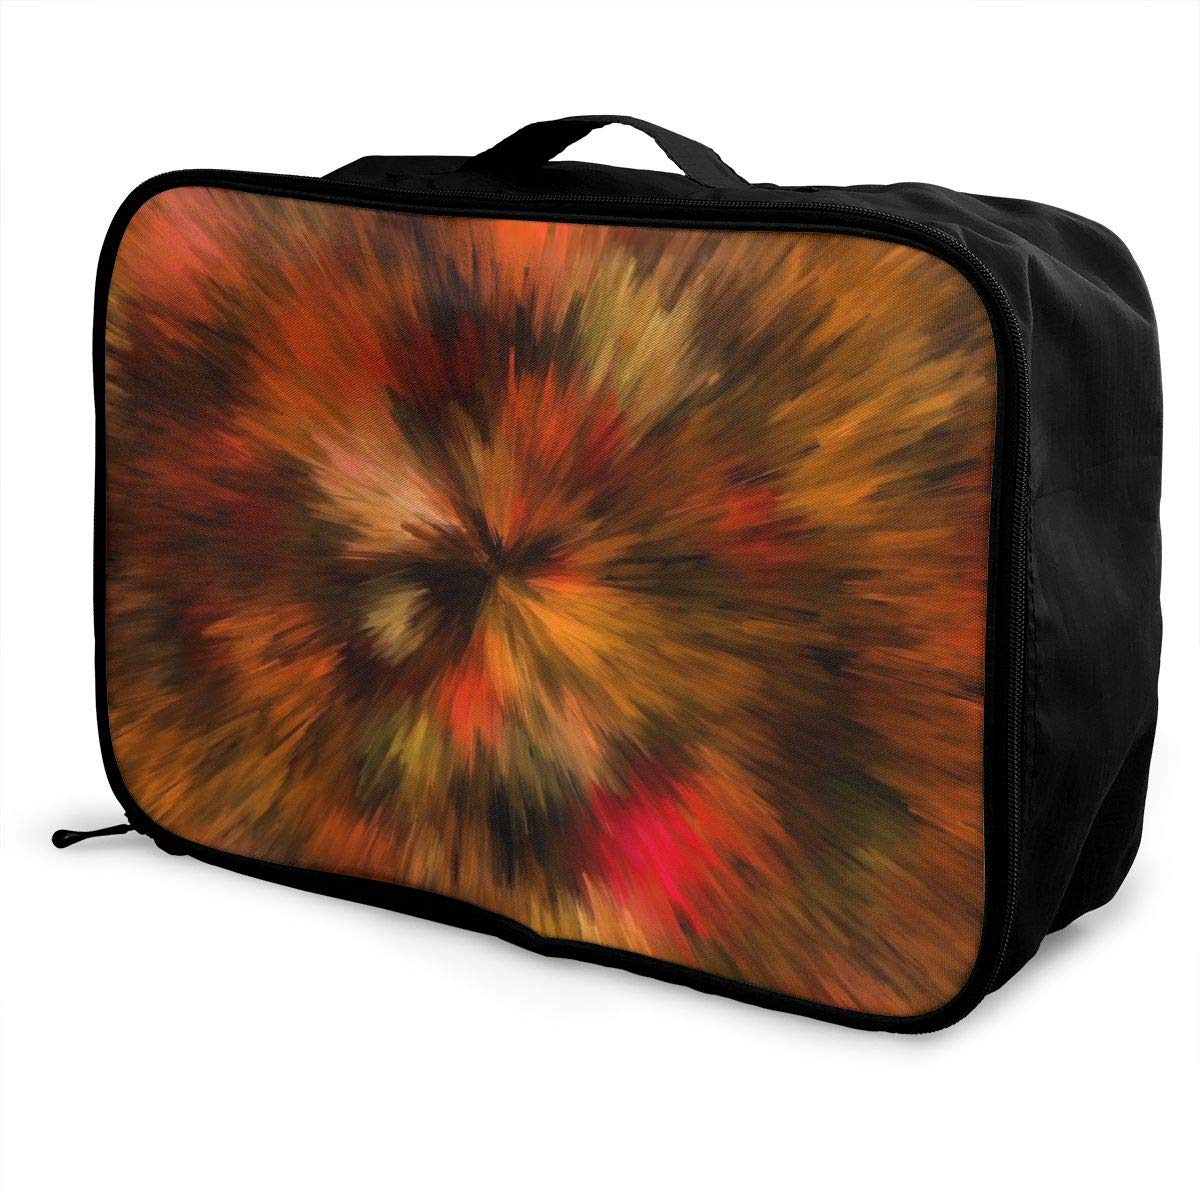 Big Bang Colorful Abstract Travel Lightweight Waterproof Foldable Storage Carry Luggage Large Capacity Portable Luggage Bag Duffel Bag